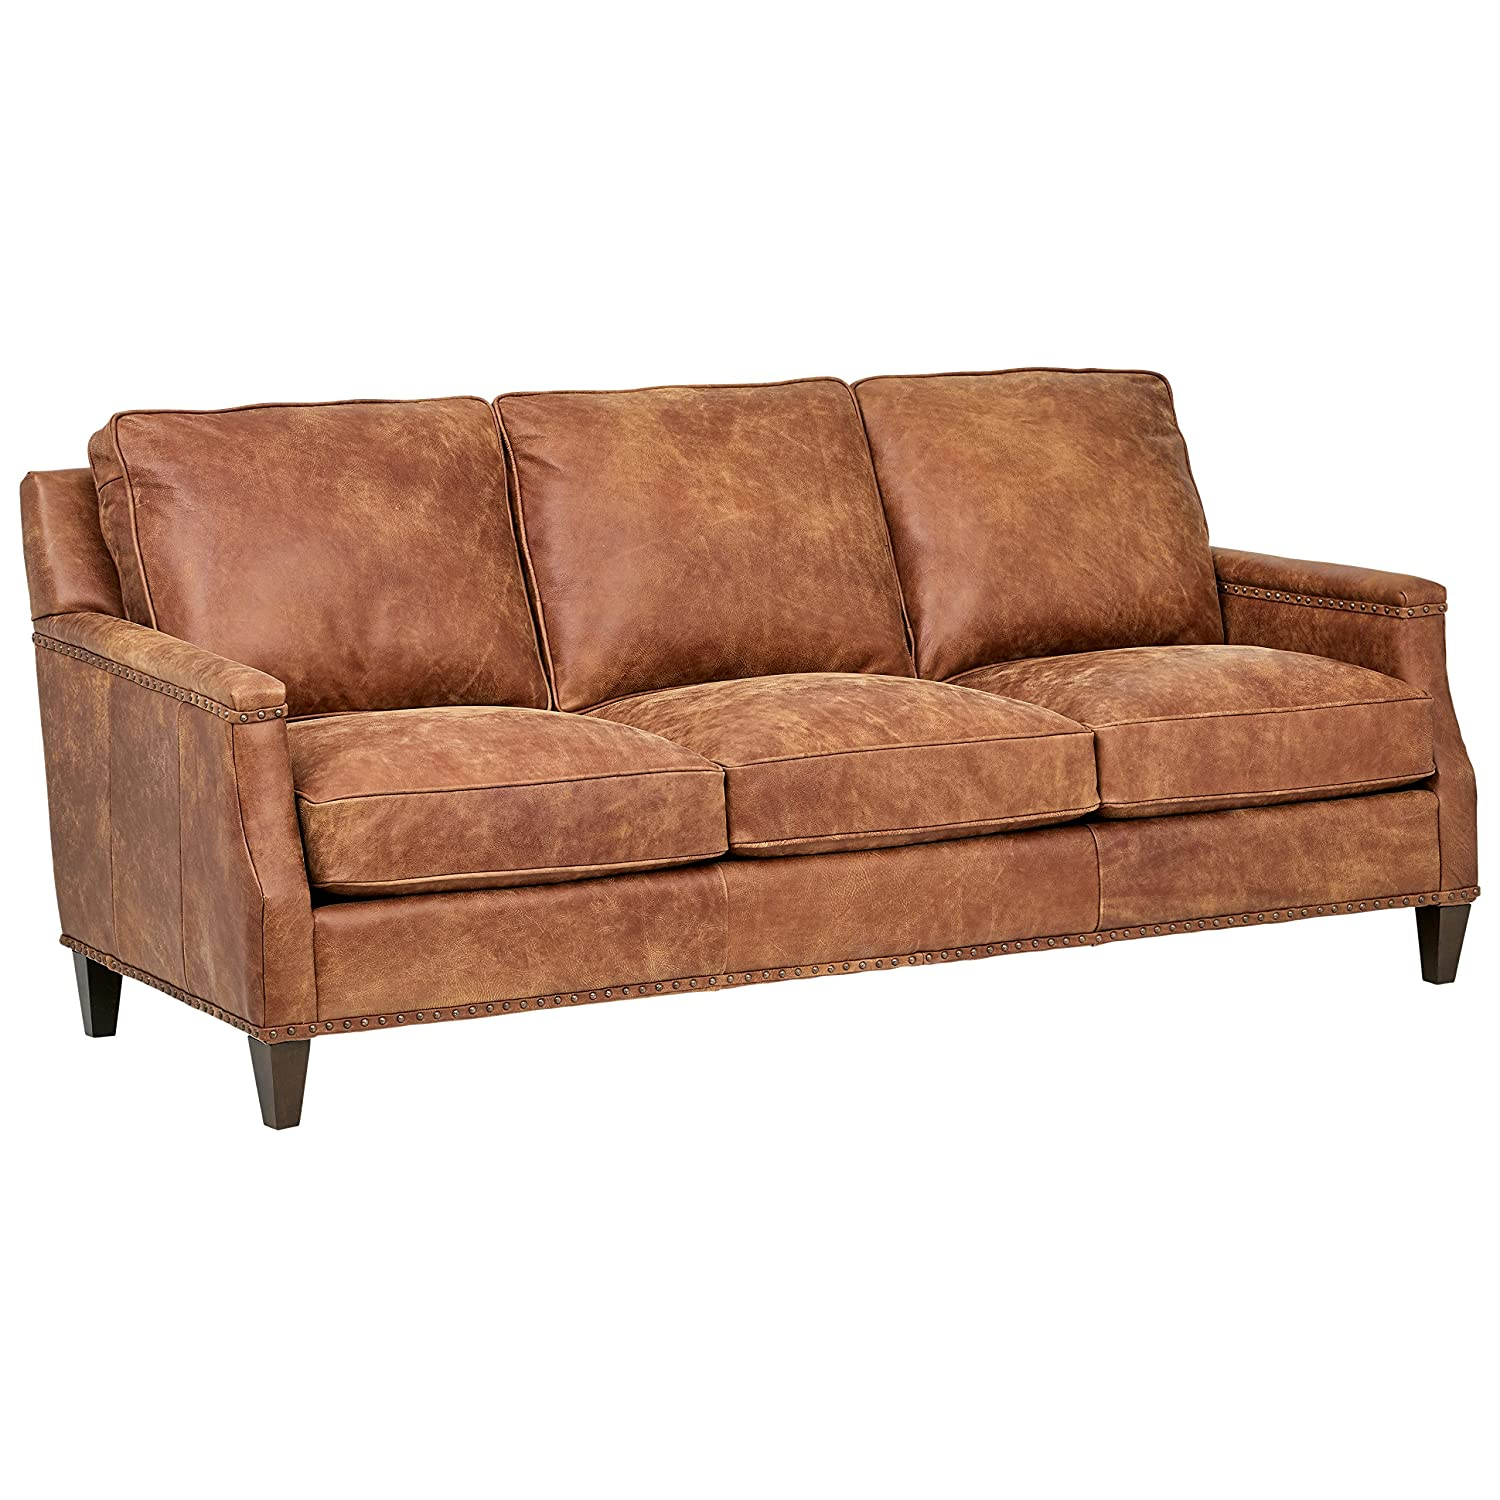 Stone & Beam Marin Leather Studded Sofa